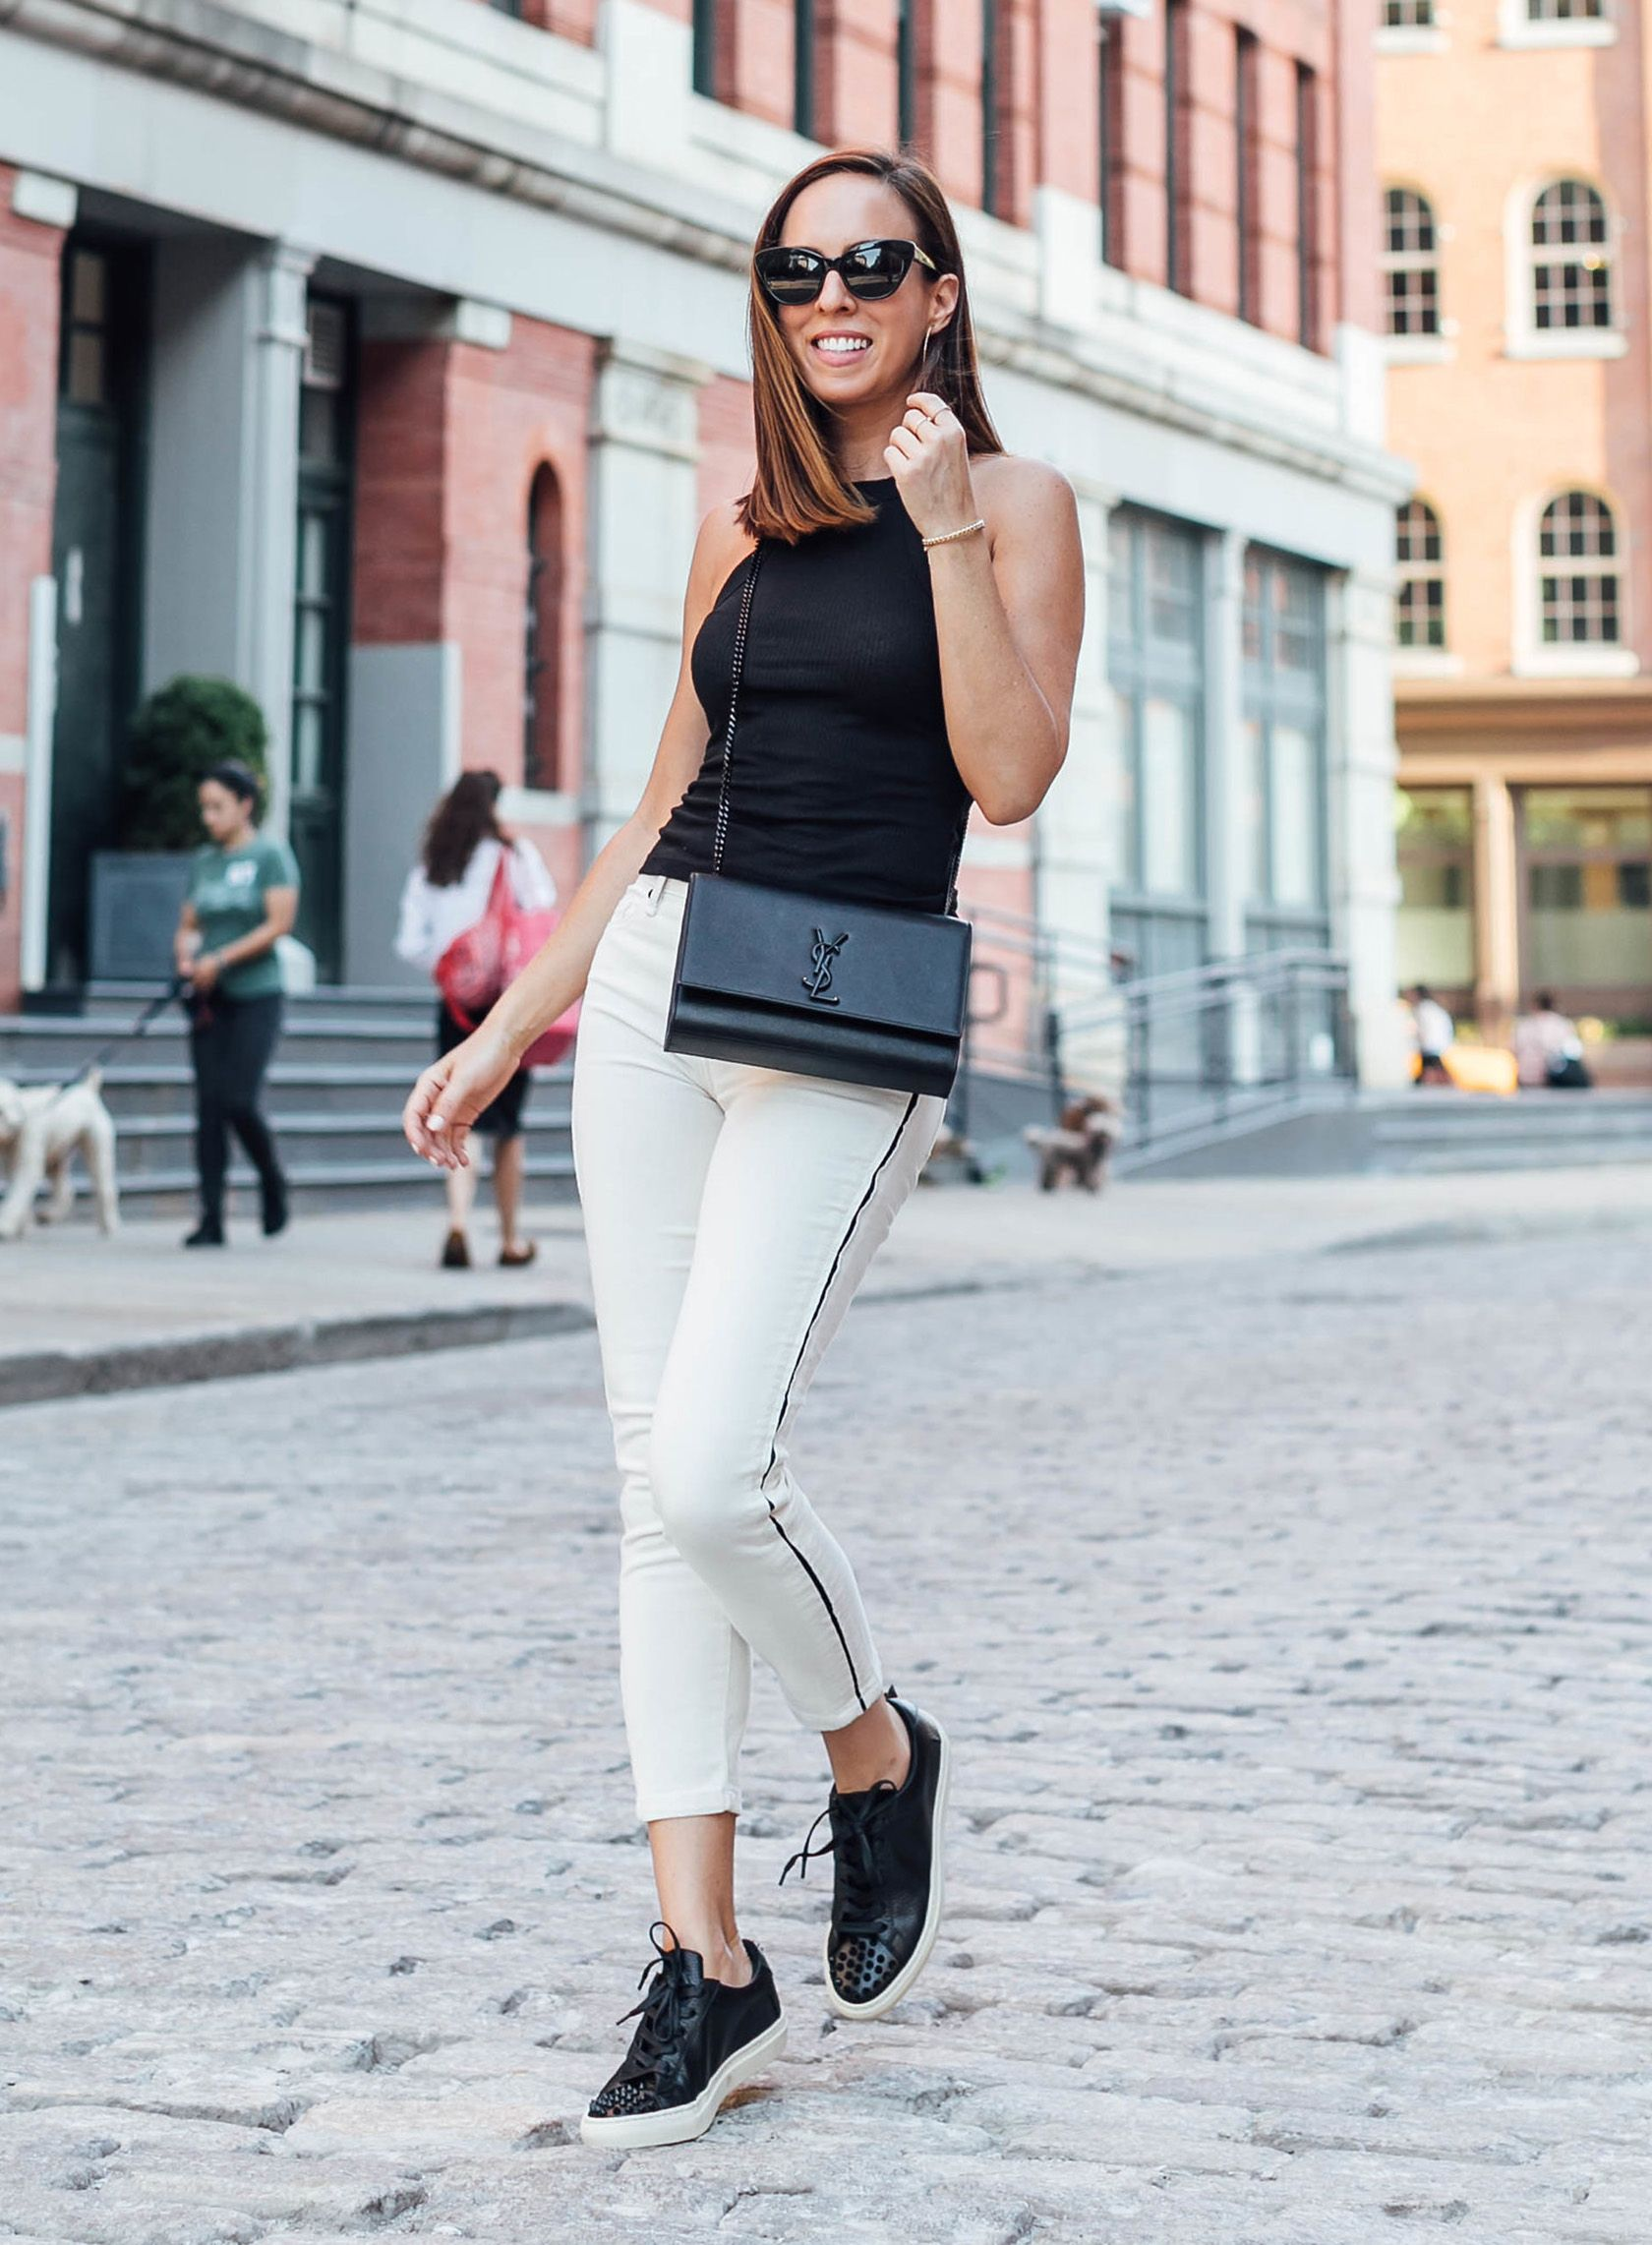 afe665cef98f5 Sydne Style shows casual summer outfit ideas in habitual stripe jeans   jeans  blackandwhite  casualstyle  sneakers